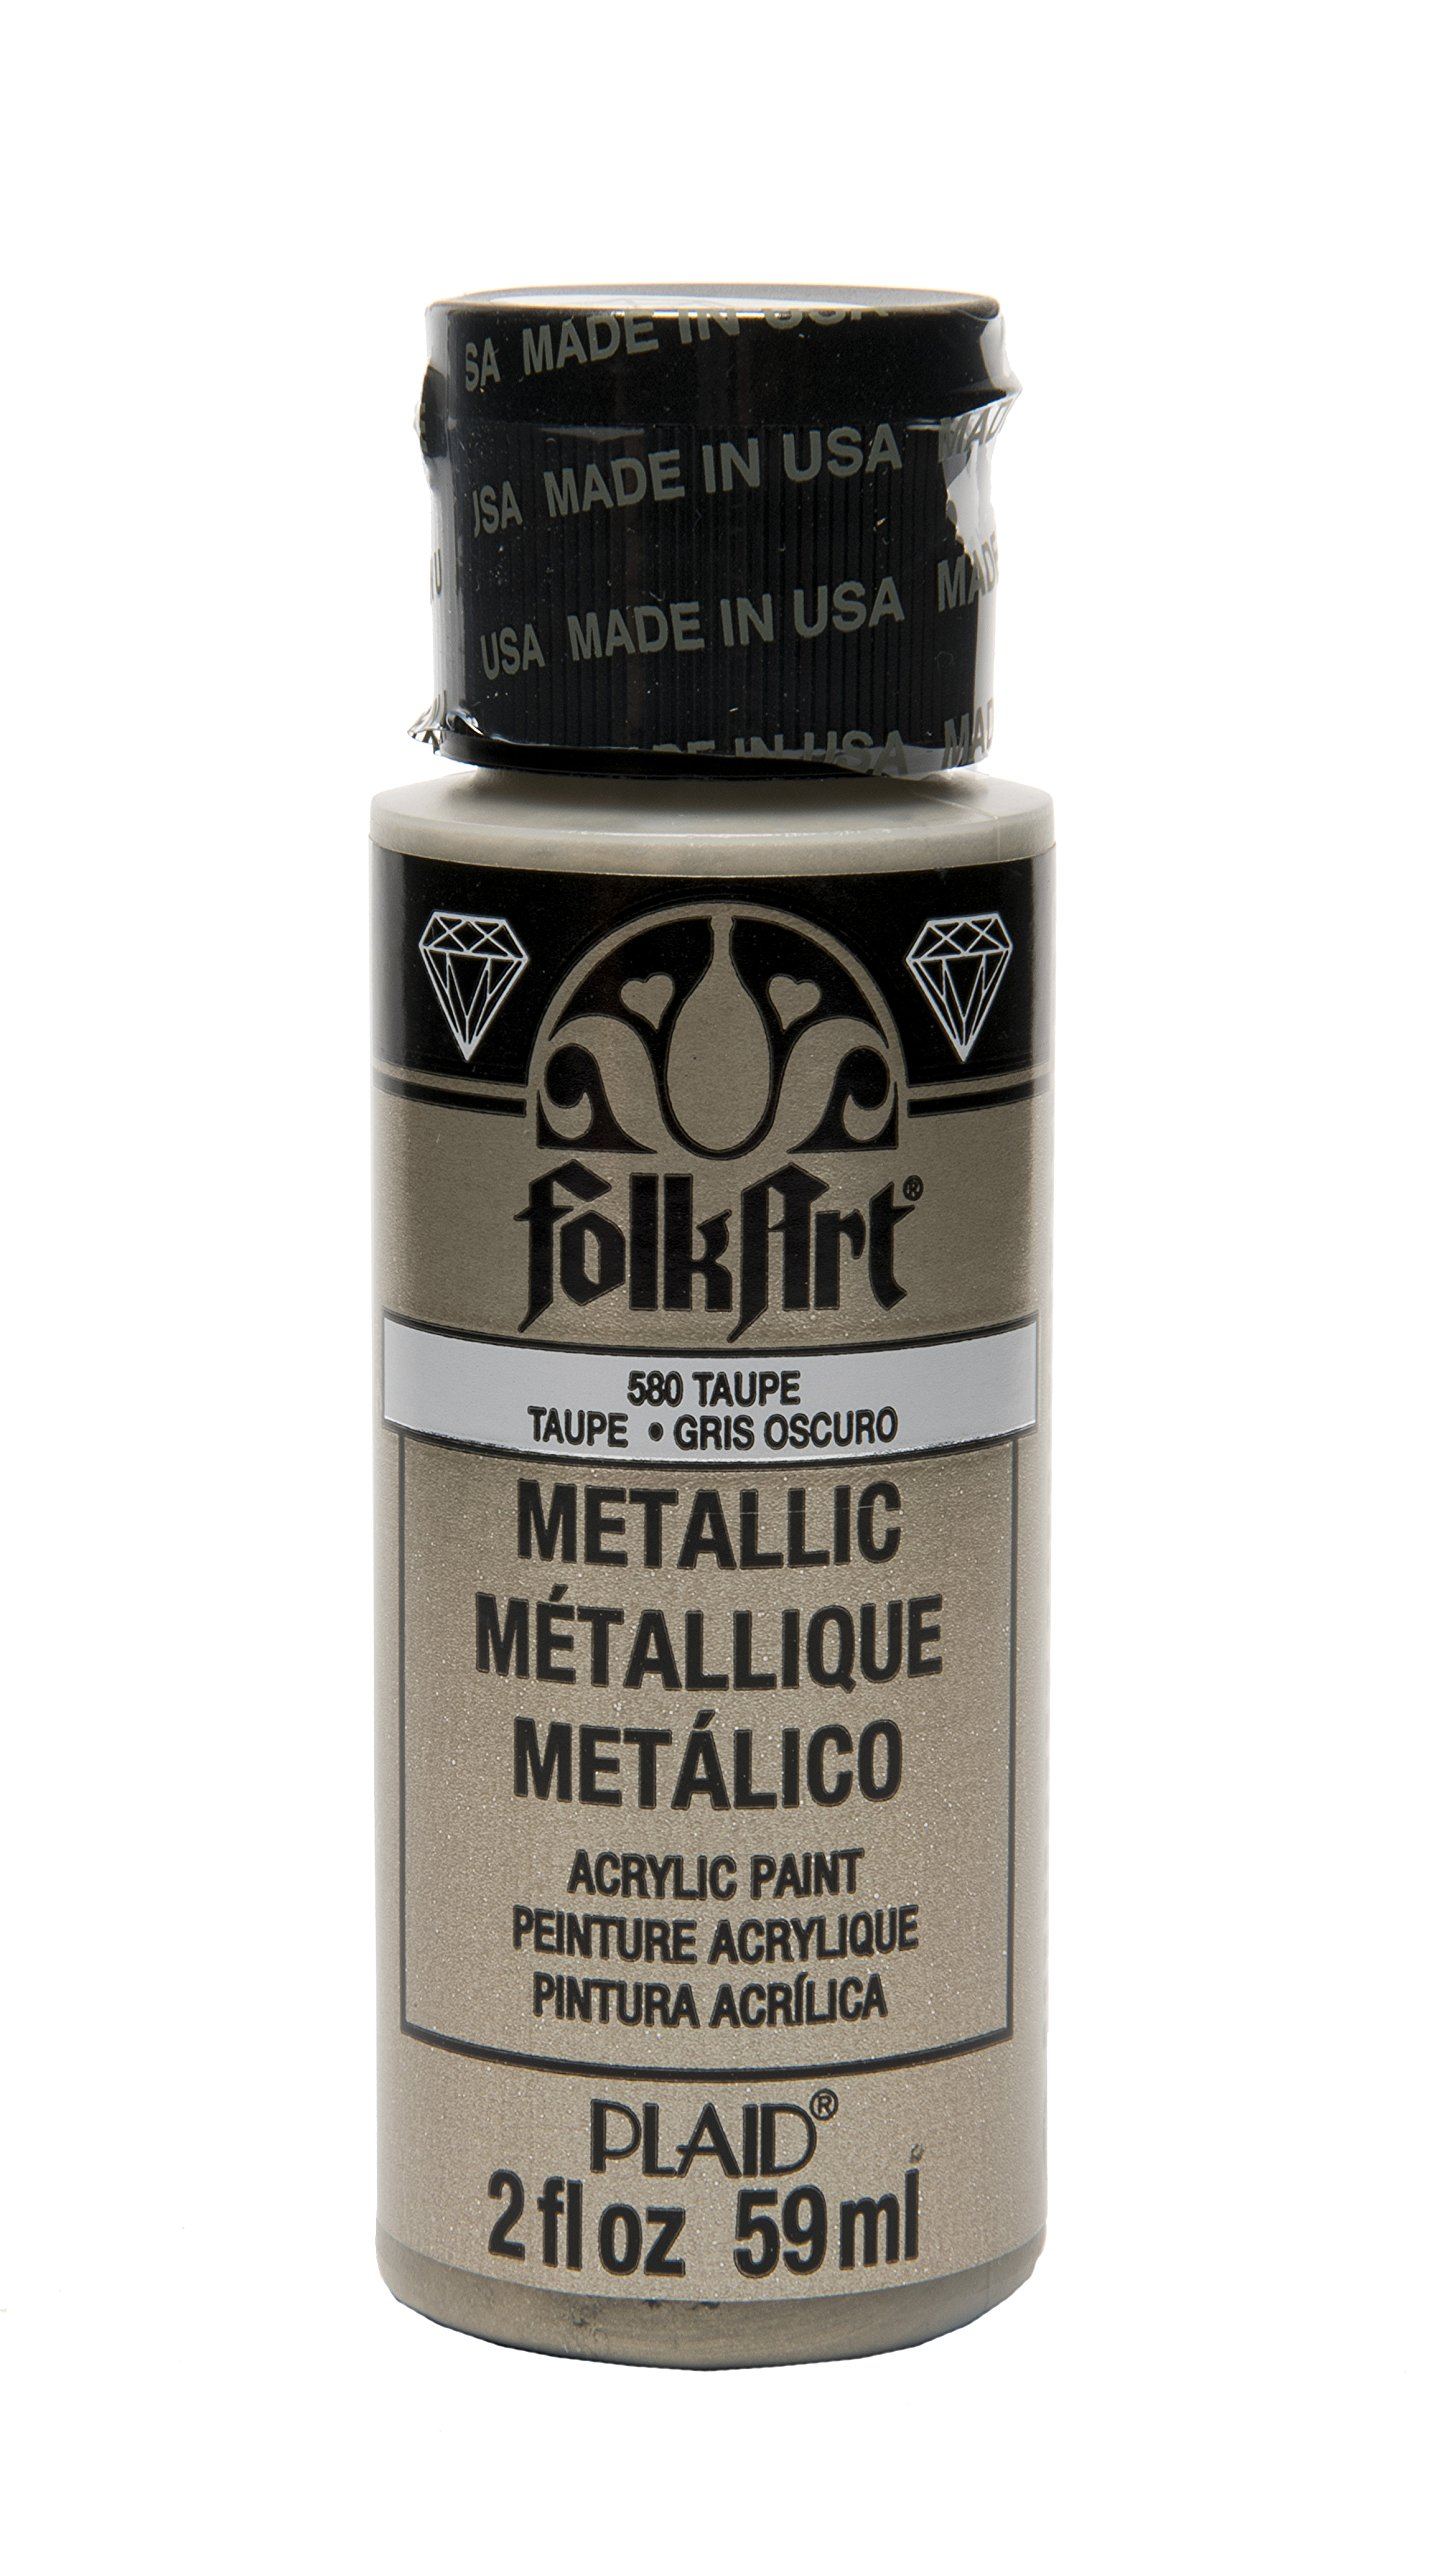 FolkArt Metallic Acrylic Paint in Assorted Colors (2 oz), 580, Taupe